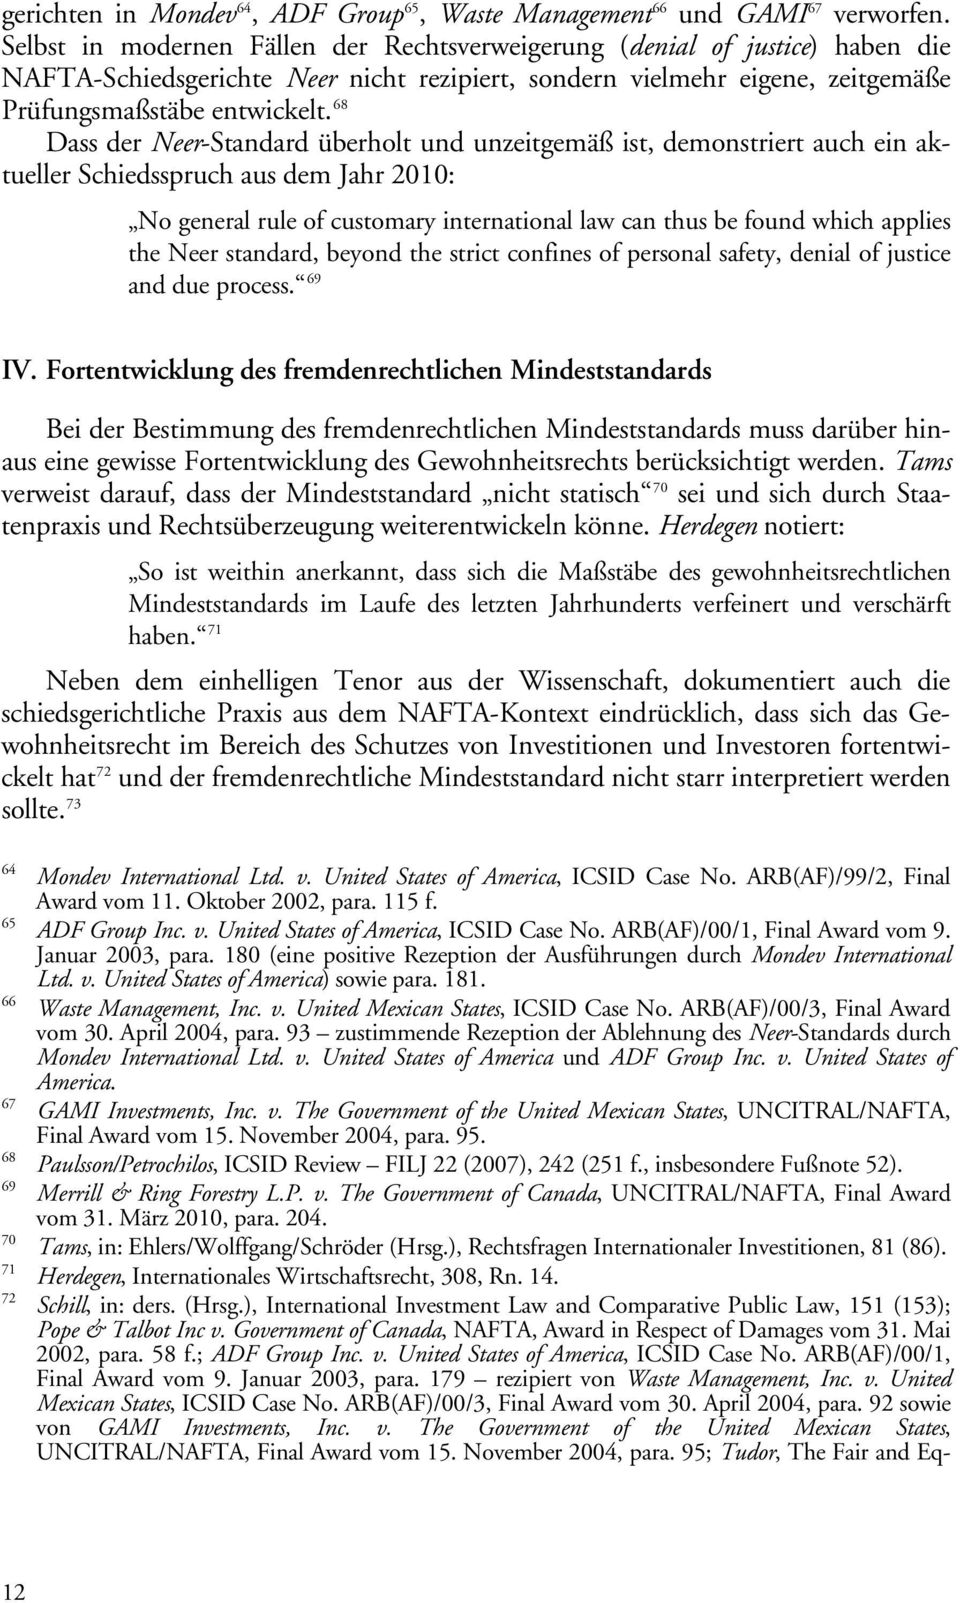 68 Dass der Neer-Standard überholt und unzeitgemäß ist, demonstriert auch ein aktueller Schiedsspruch aus dem Jahr 2010: No general rule of customary international law can thus be found which applies